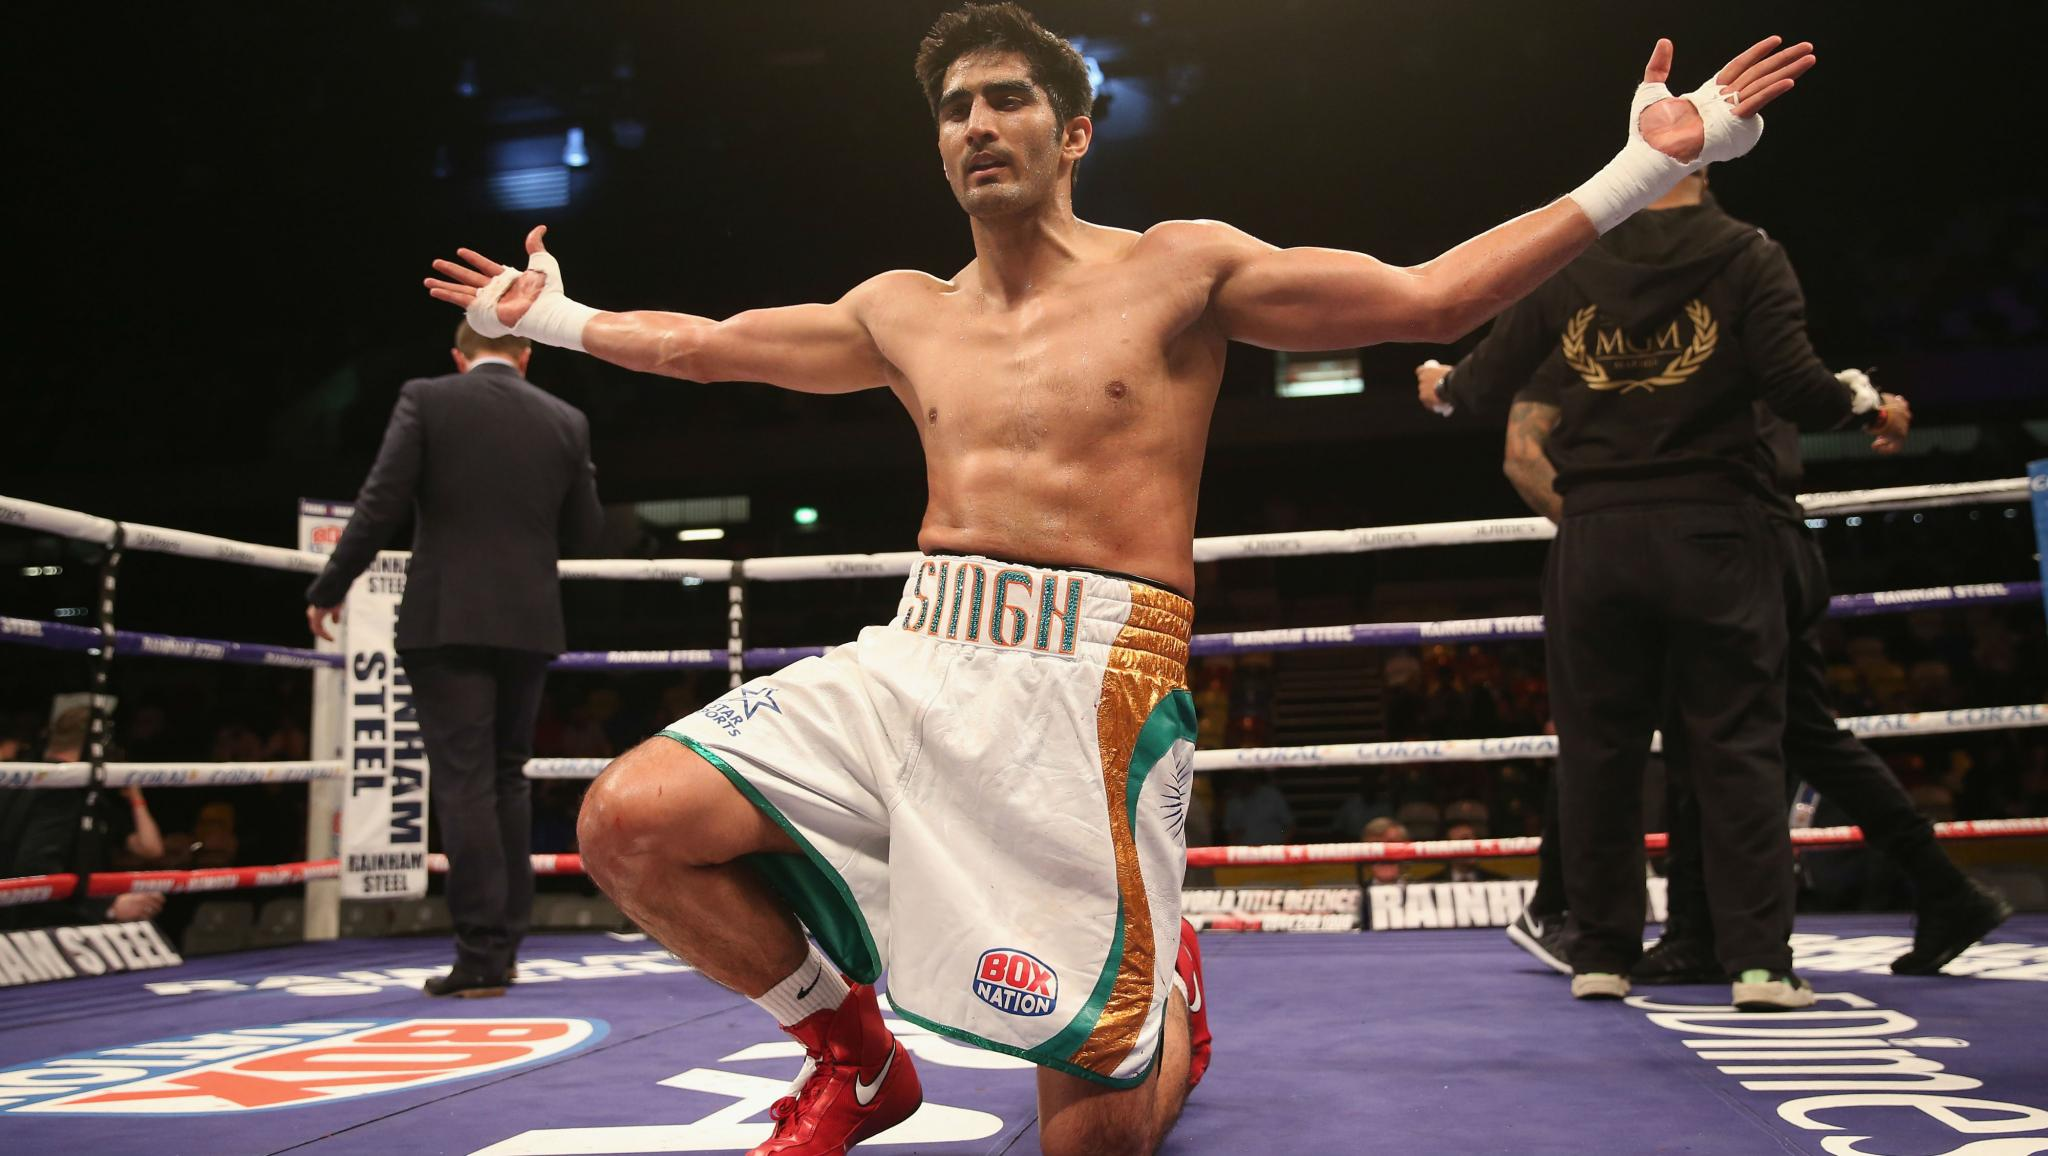 Vijender Singh Reacts to JNU Attack, Responds to Twitter User in 'Jaat' Style, Says He is Not 'Andh-Bhakt'